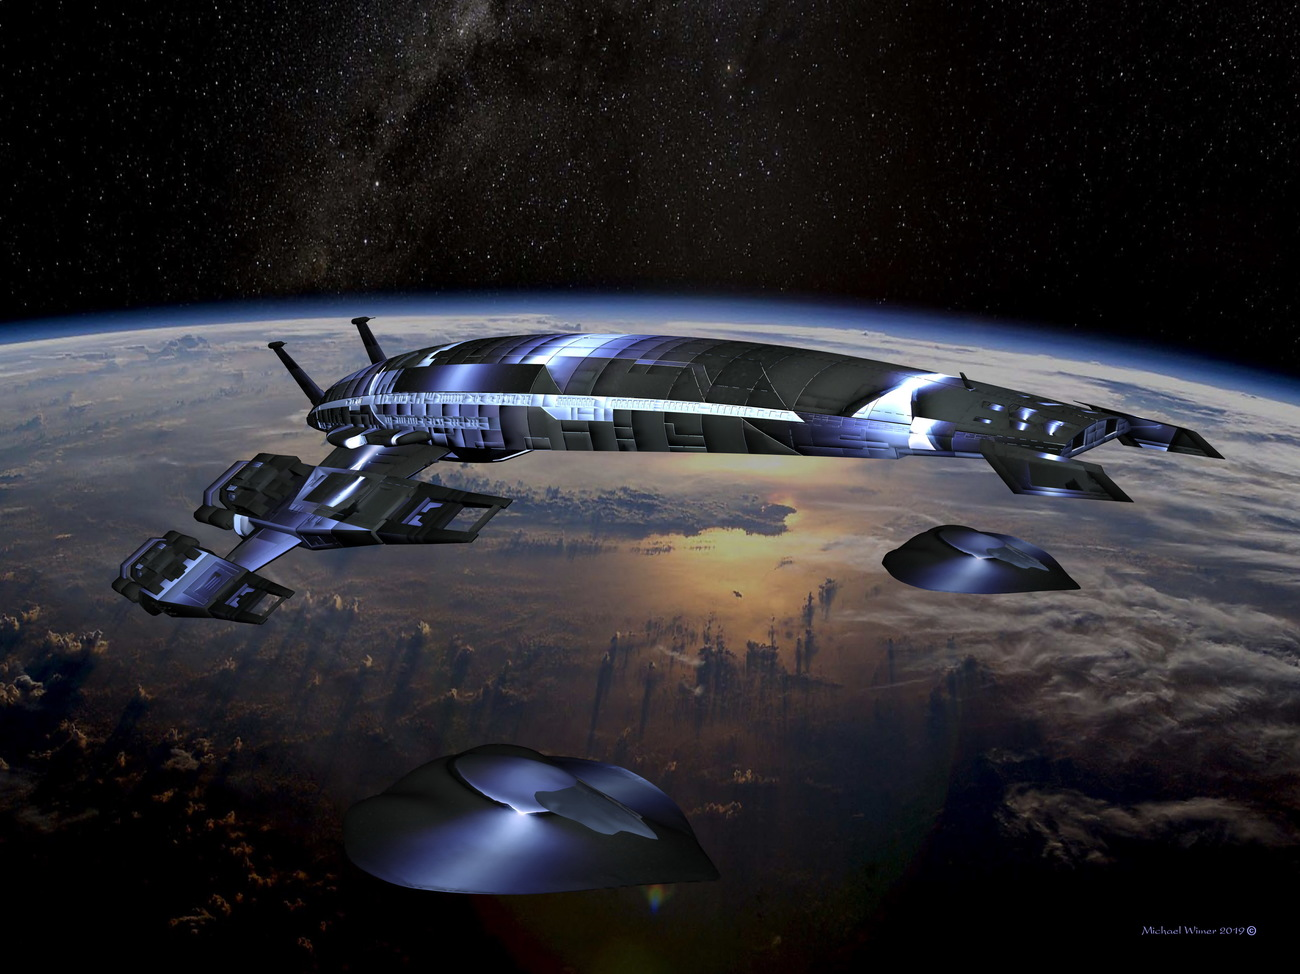 Interstellar Transport with Escorts